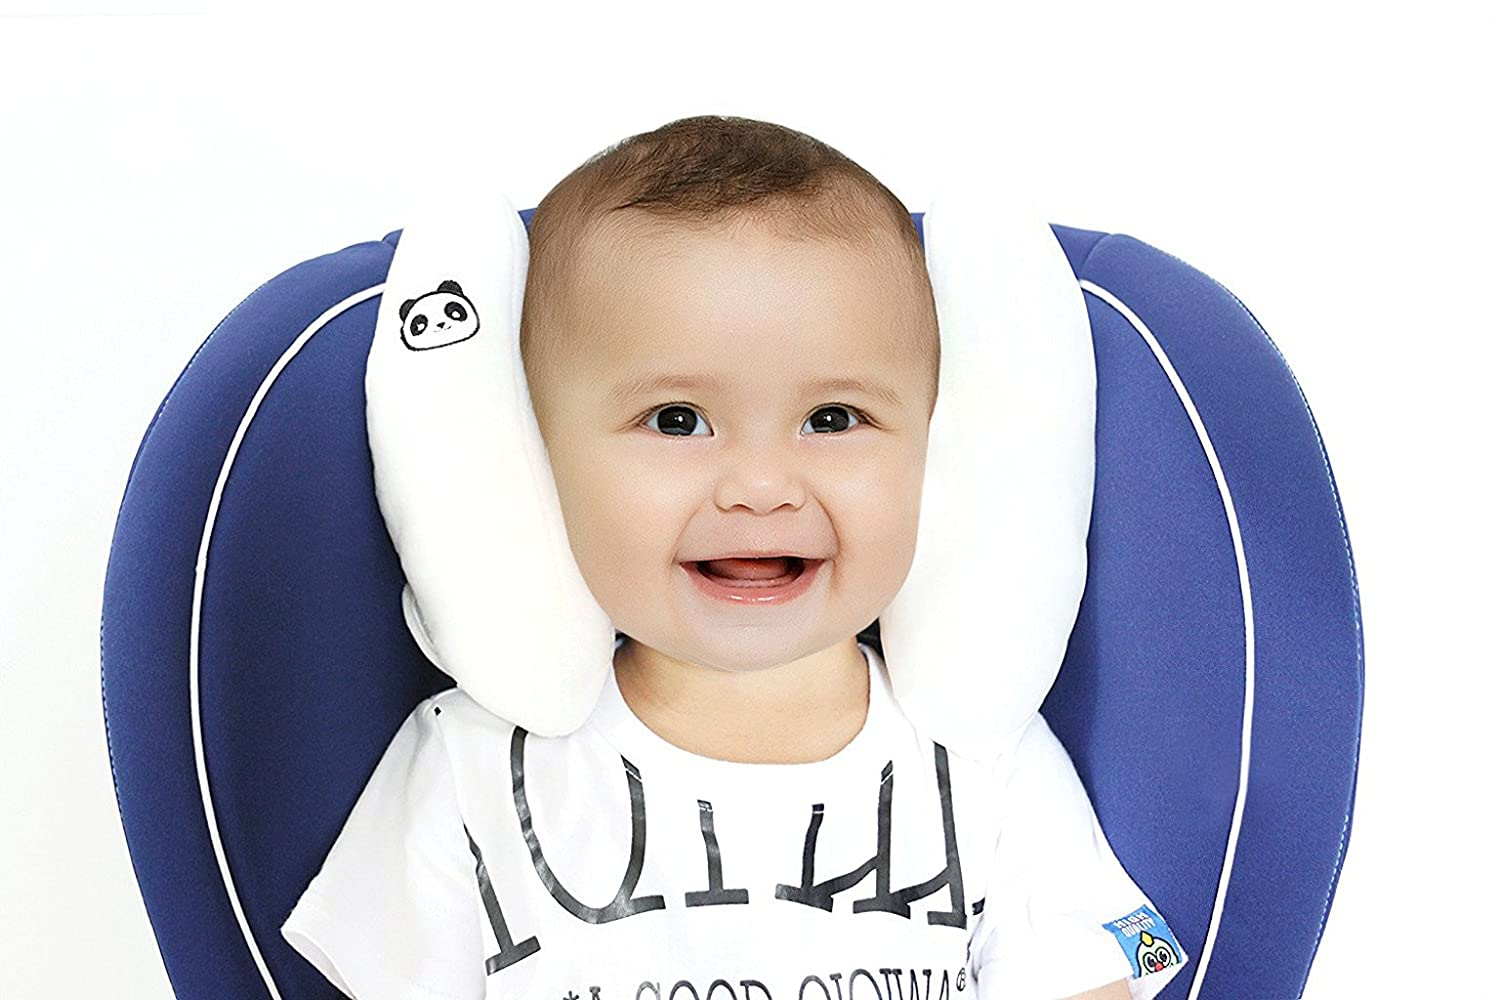 Vine Baby Stroller Pillows Infant Car Seat Head /& Neck Protection Pillow Boys Girls Soft Adjustable Head Support Pram Capsule Pillow,White